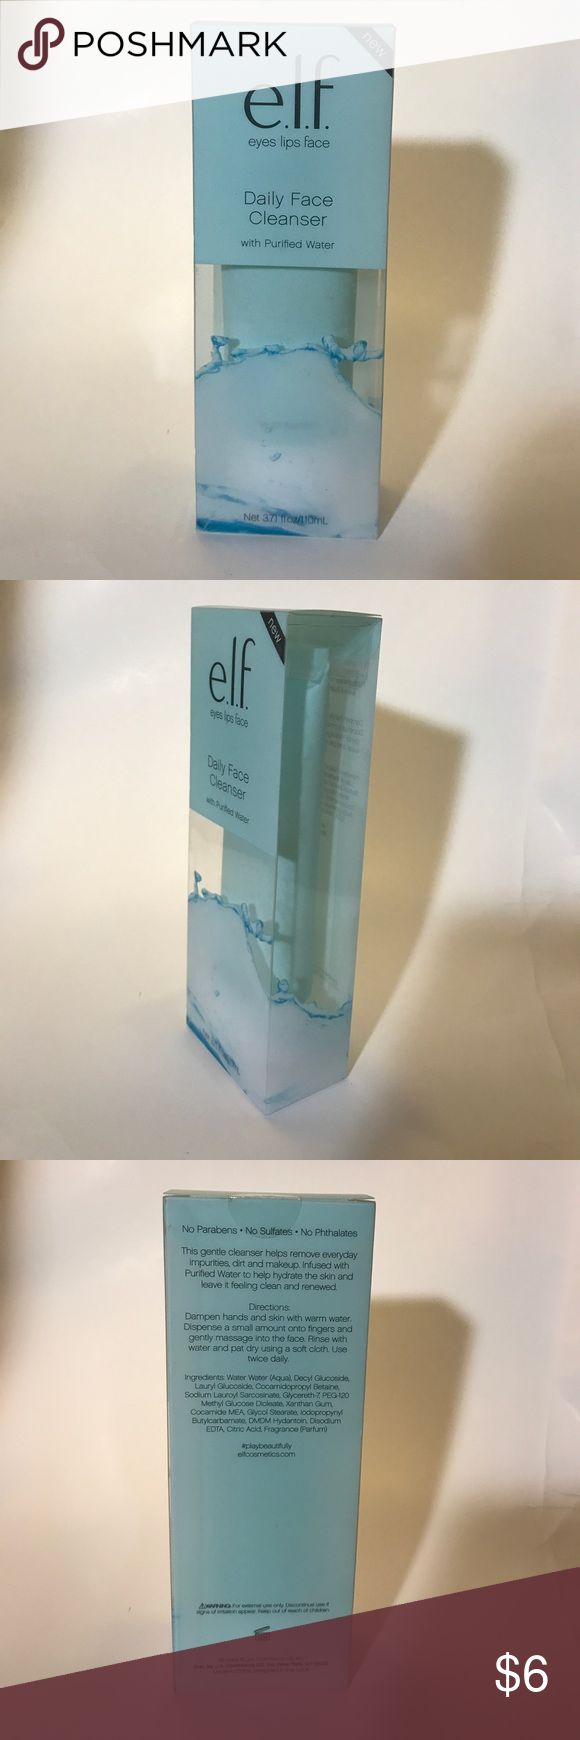 e.l.f. eyes lips face Daily Face Cleanser Eyes - Lips -Face With Purified Water No Parabens No Sulfates No PhthalatesThis gentle cleanser helps remove everyday impurities, dirt and makeup. Infused with Purified Water to help hydrate the skin and leave it feeling clean and renewed. e.l.f. Makeup